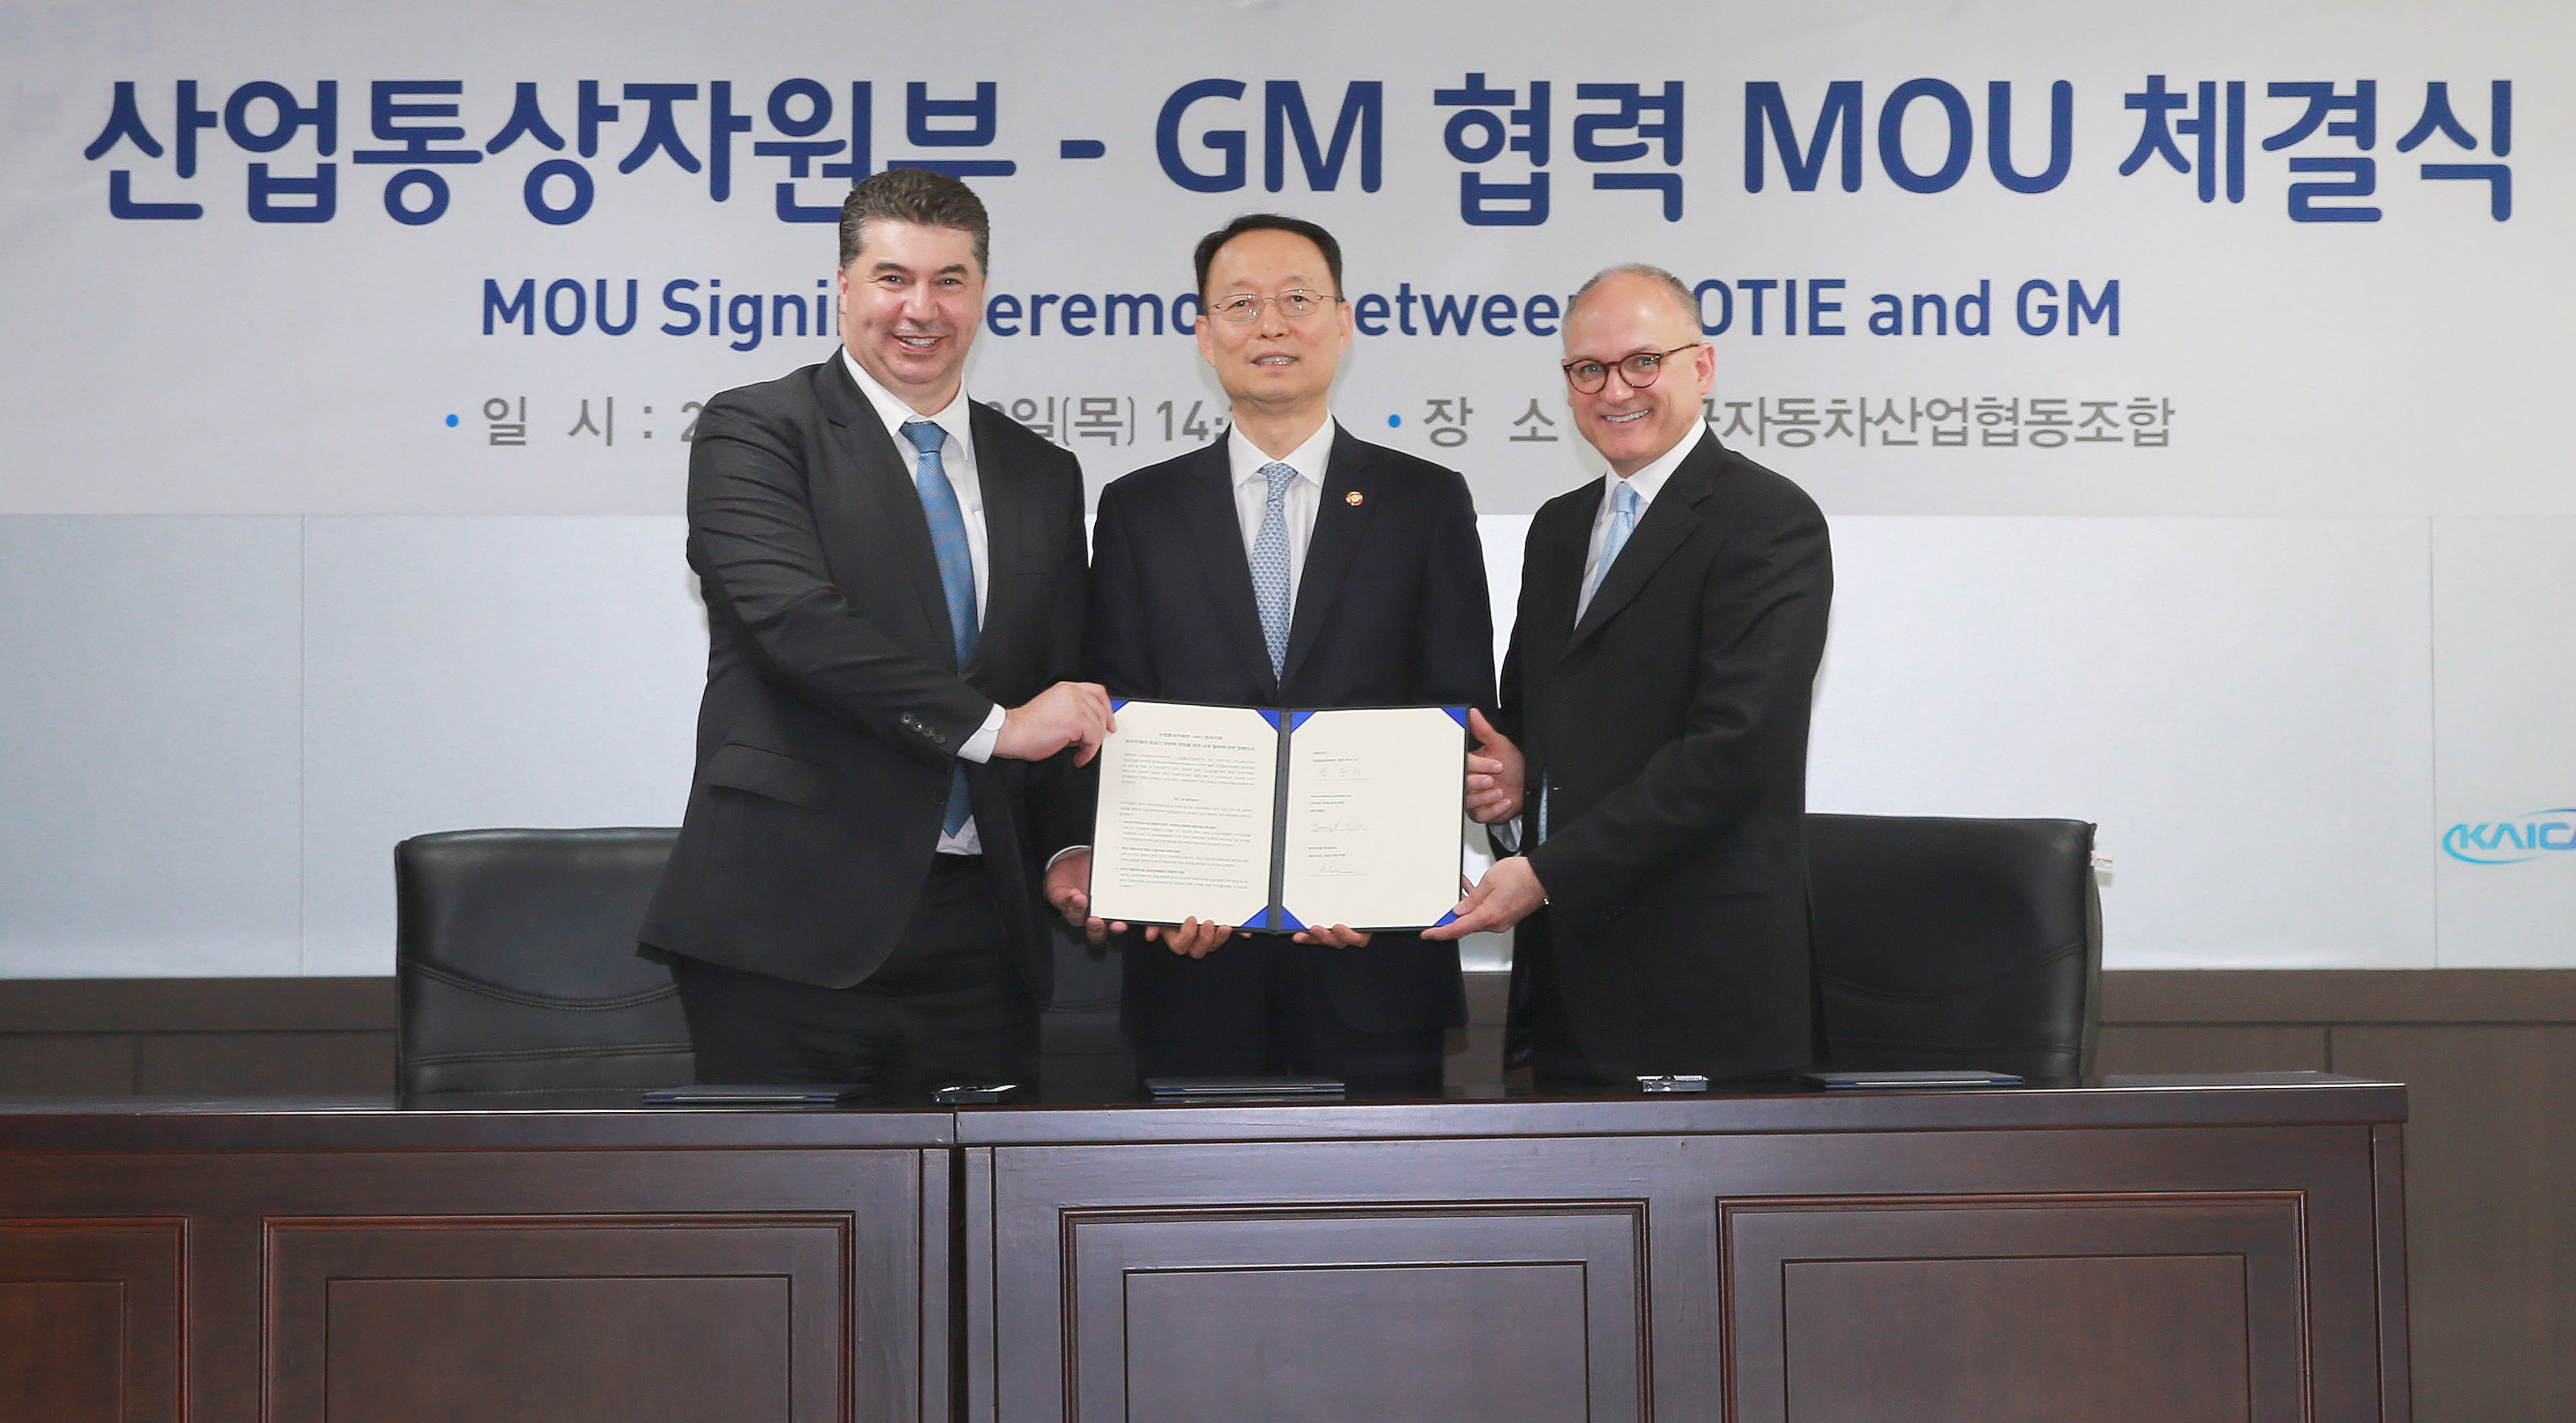 Ministry signs MOU with GM to advance Korean auto industry